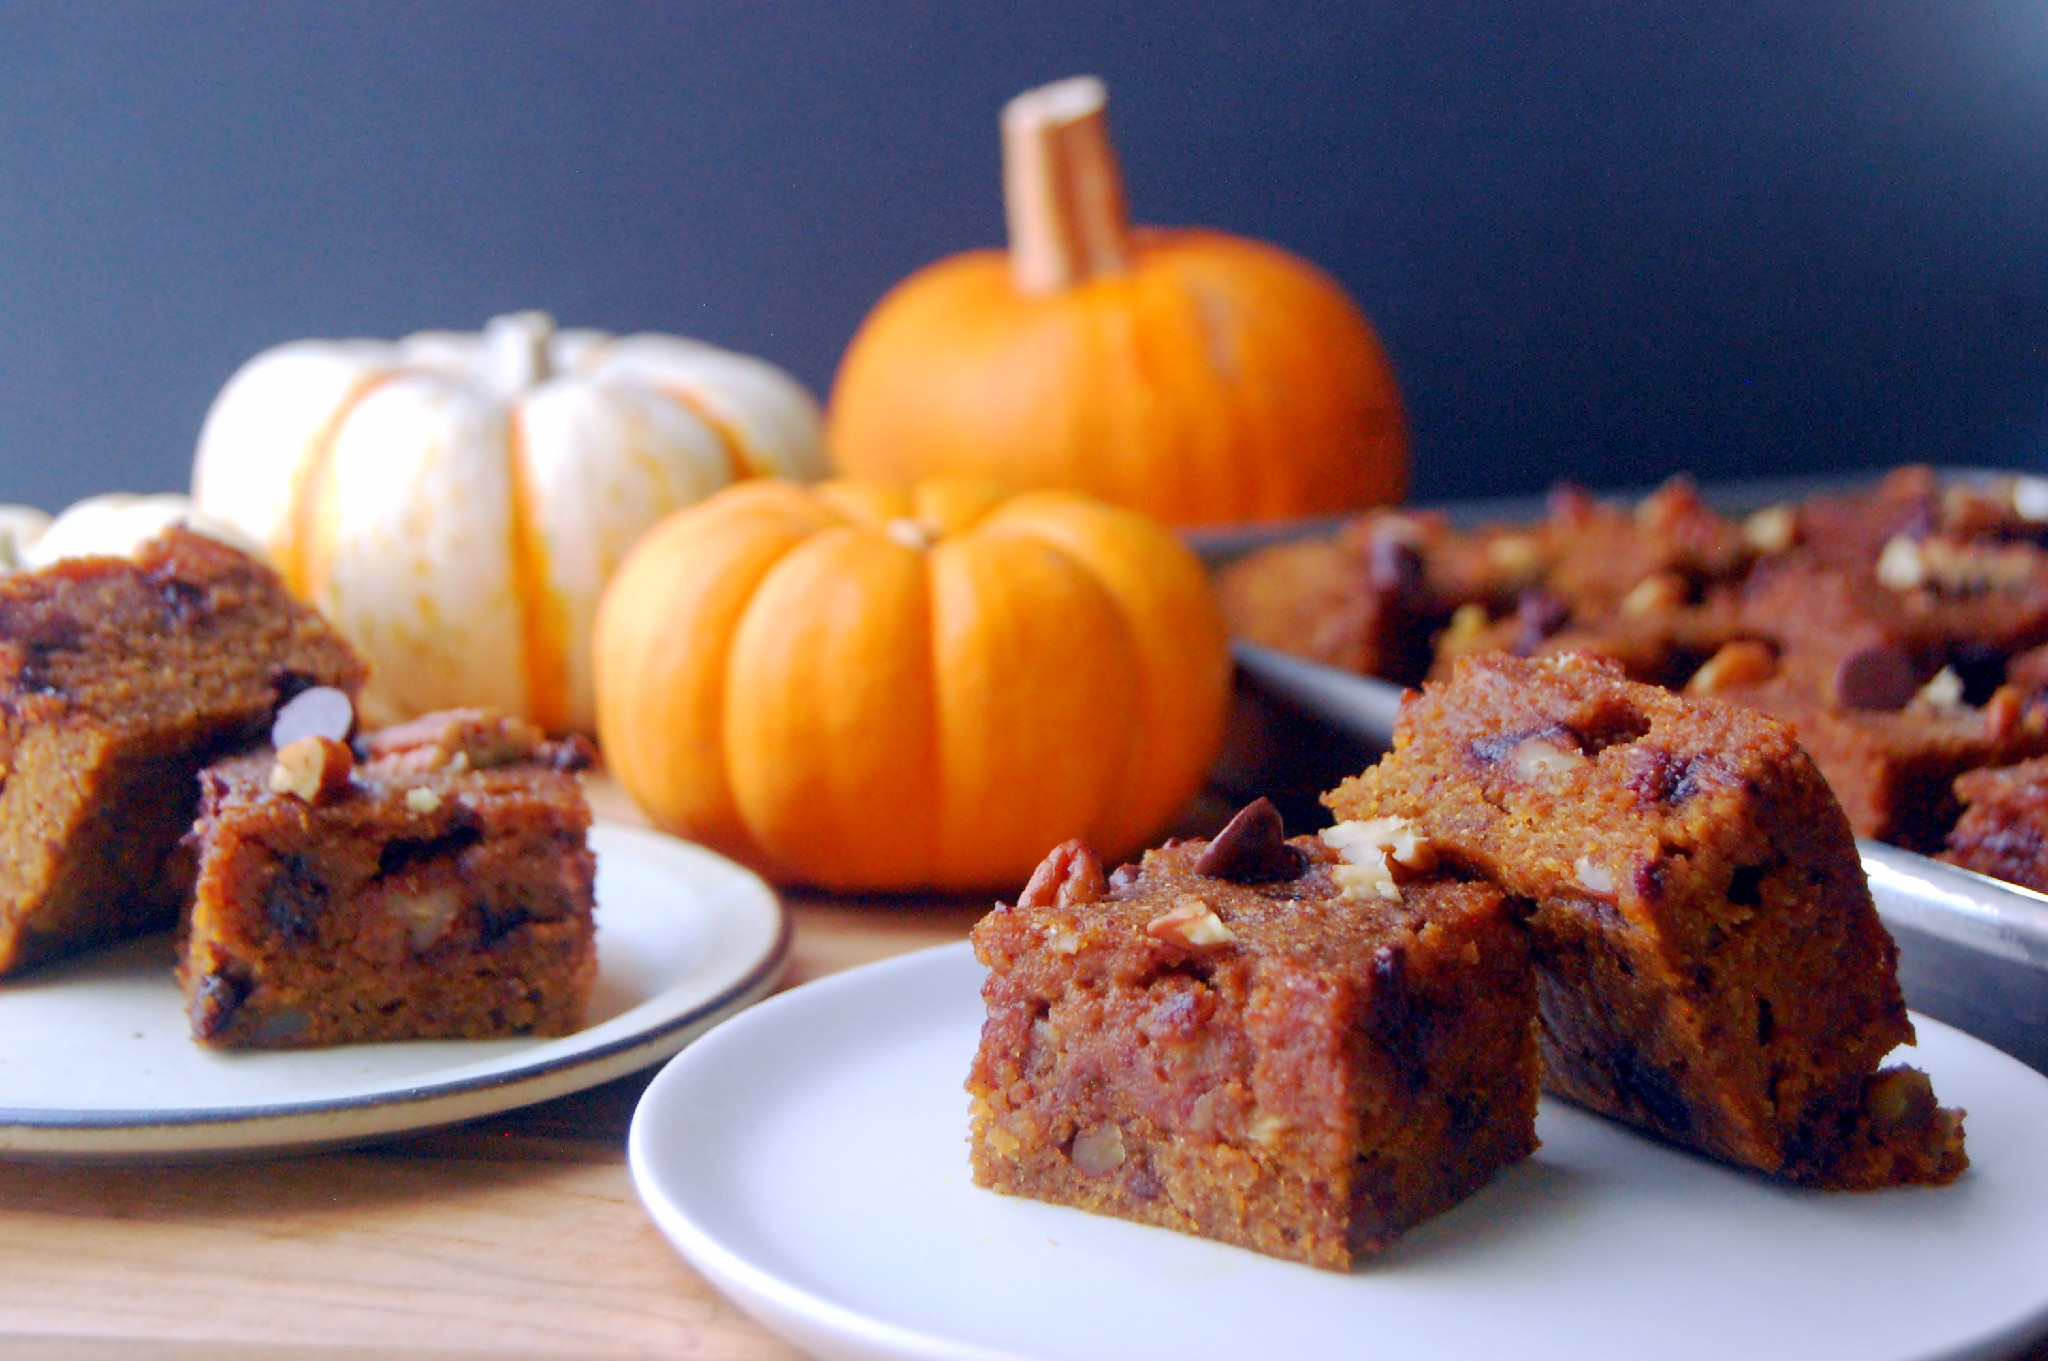 Moist and fudgy Pumpkin Blondies with Pecans and Chocolate Chips, made with whole wheat flour and maple syrup. They're a wholesome fall treat! | uprootfromoregon.com